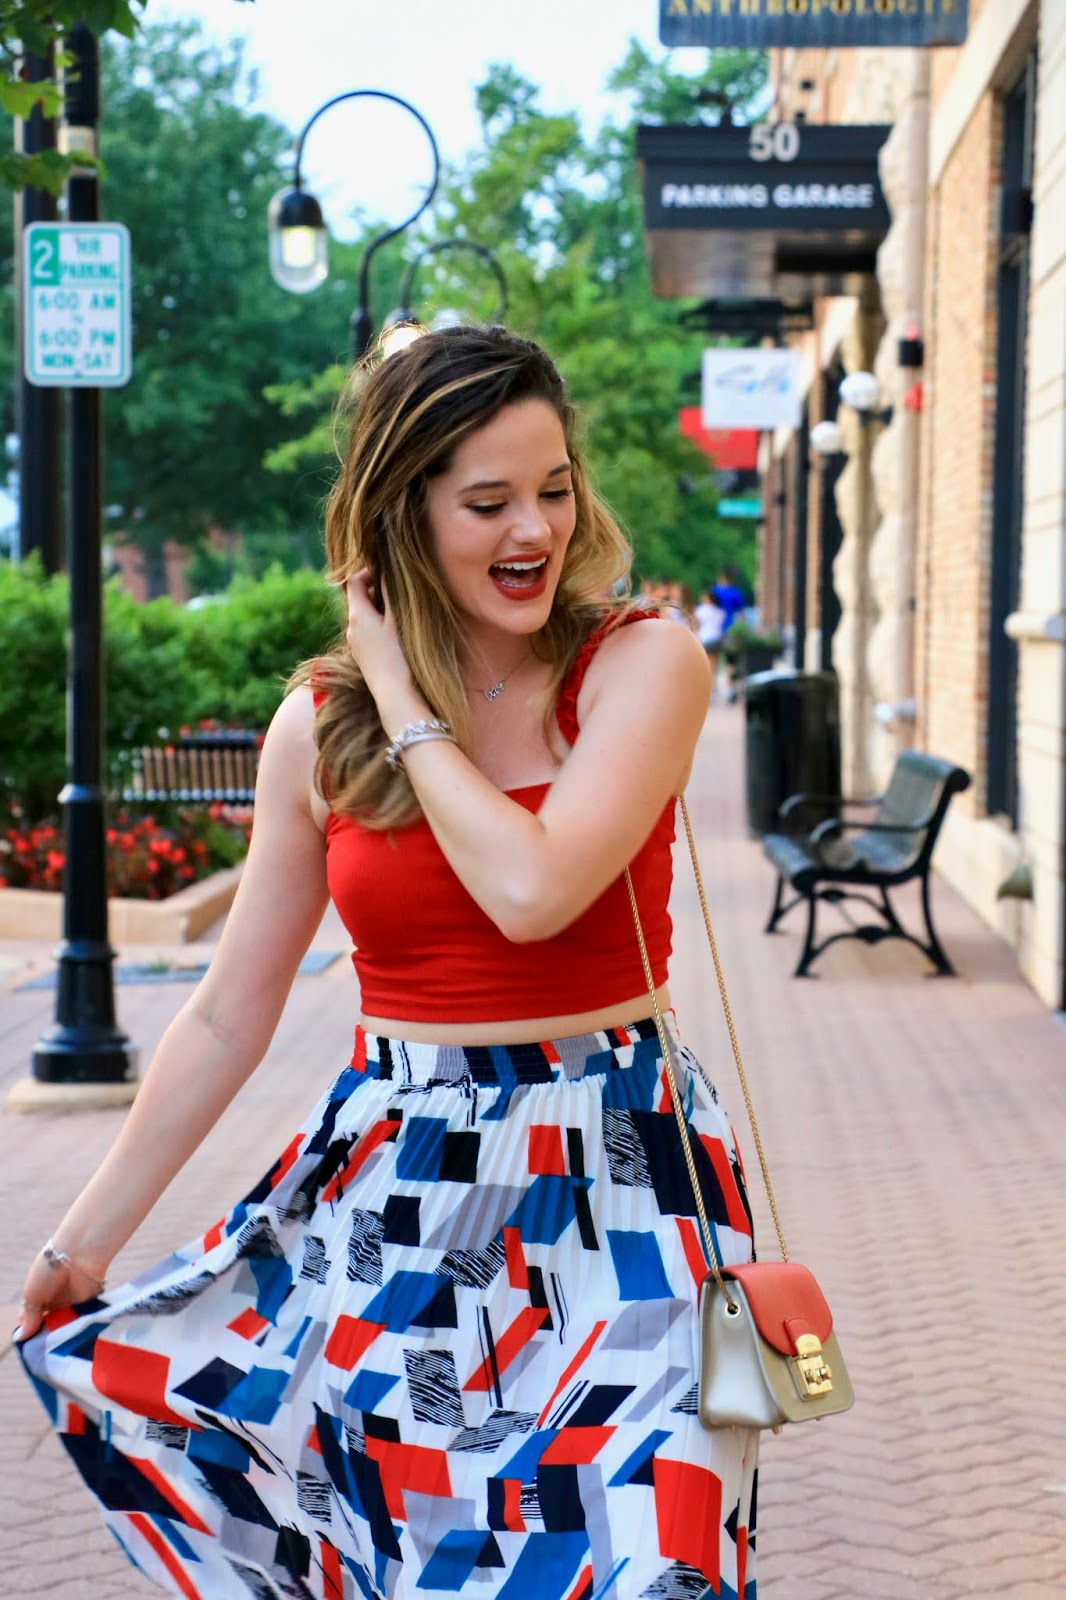 Nyc fashion blogger Kathleen Harper wearing a summer midi skirt outfit.